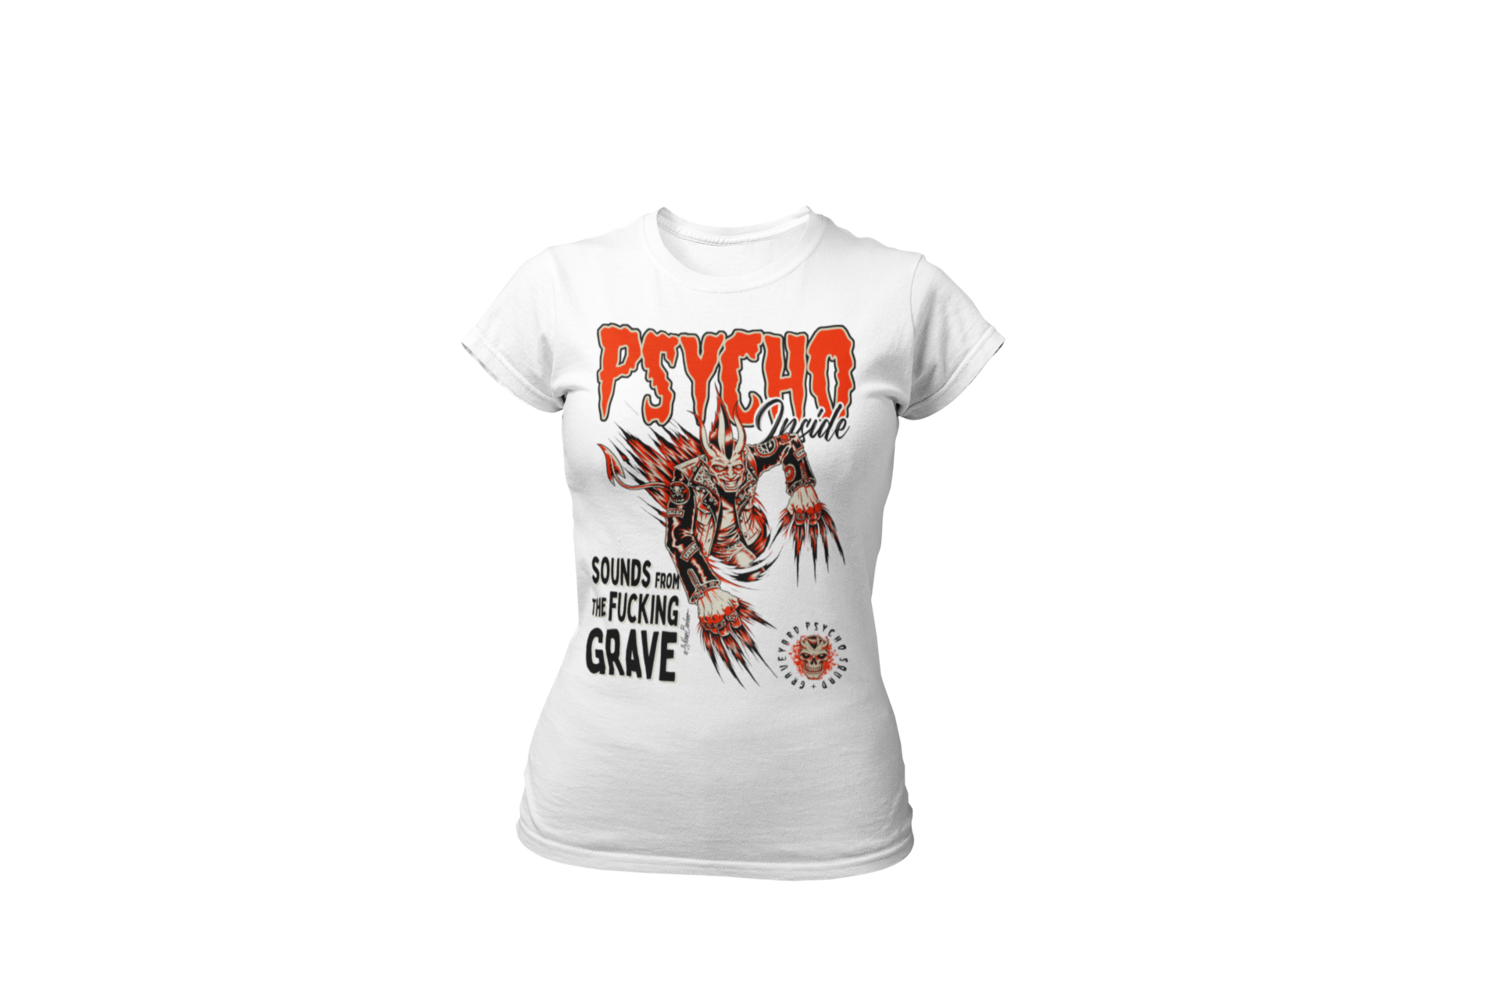 PSYCHO INSIDE T-SHIRT WOMAN BY NANO BARBERO